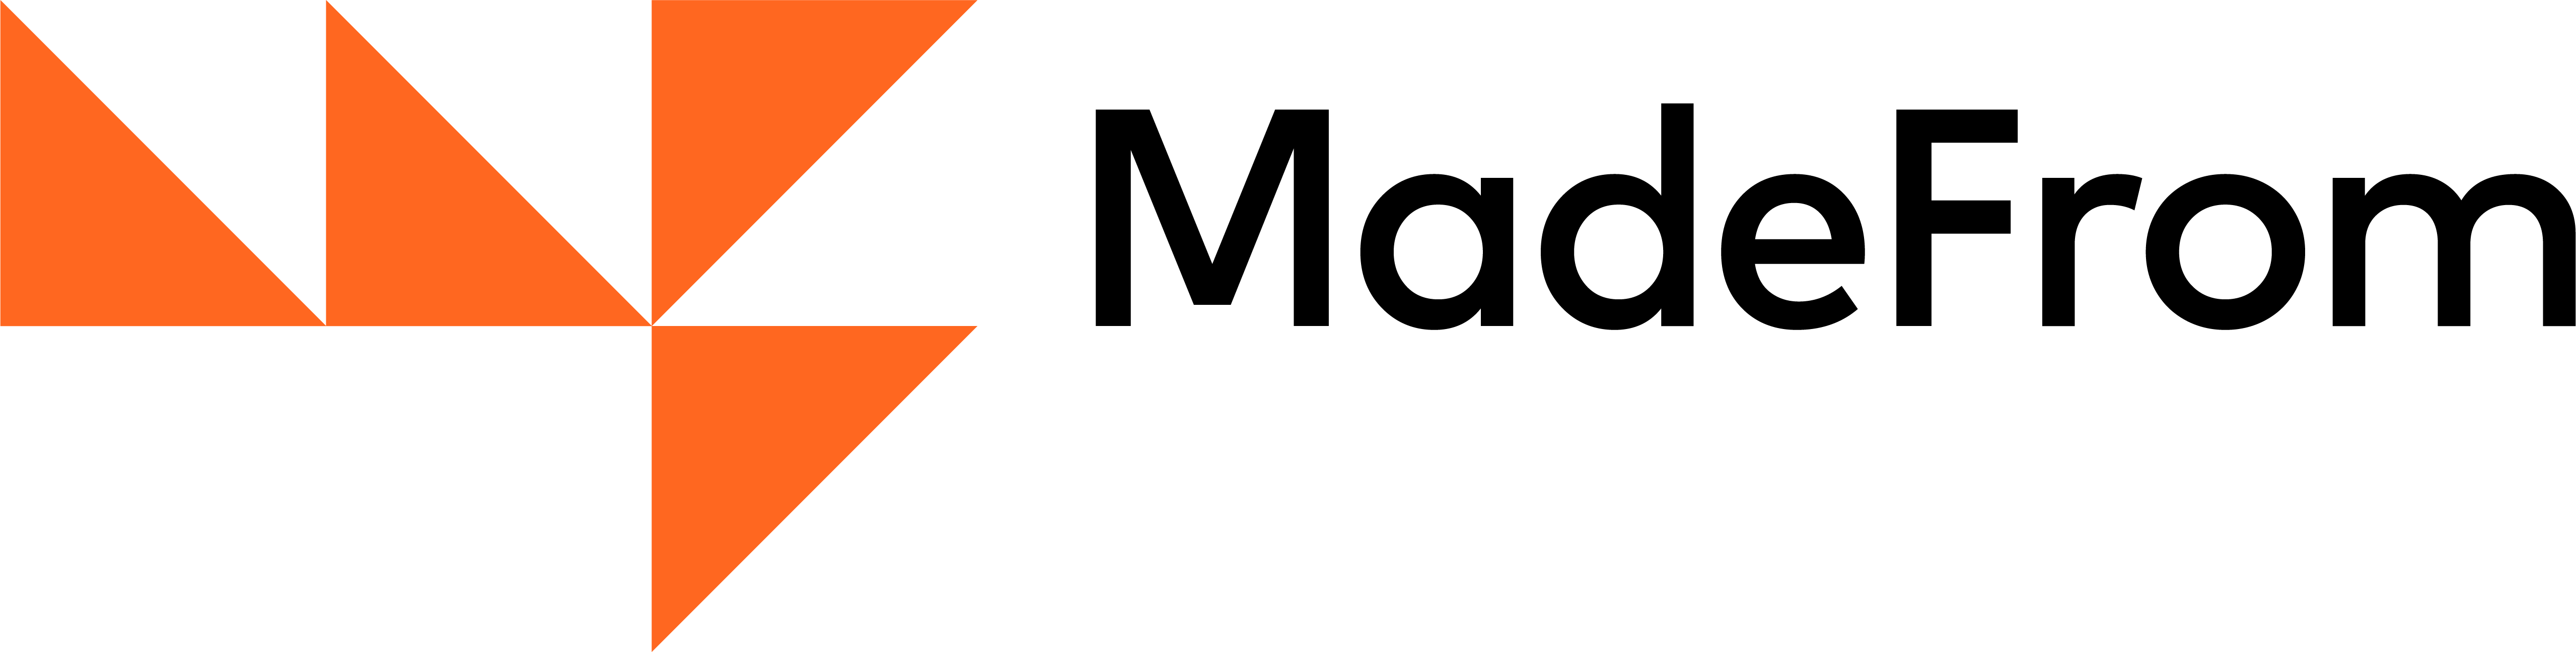 The MadeFrom logo and name. The logo is four orange triangles, arranged to form an abstract 'M' and 'F'.